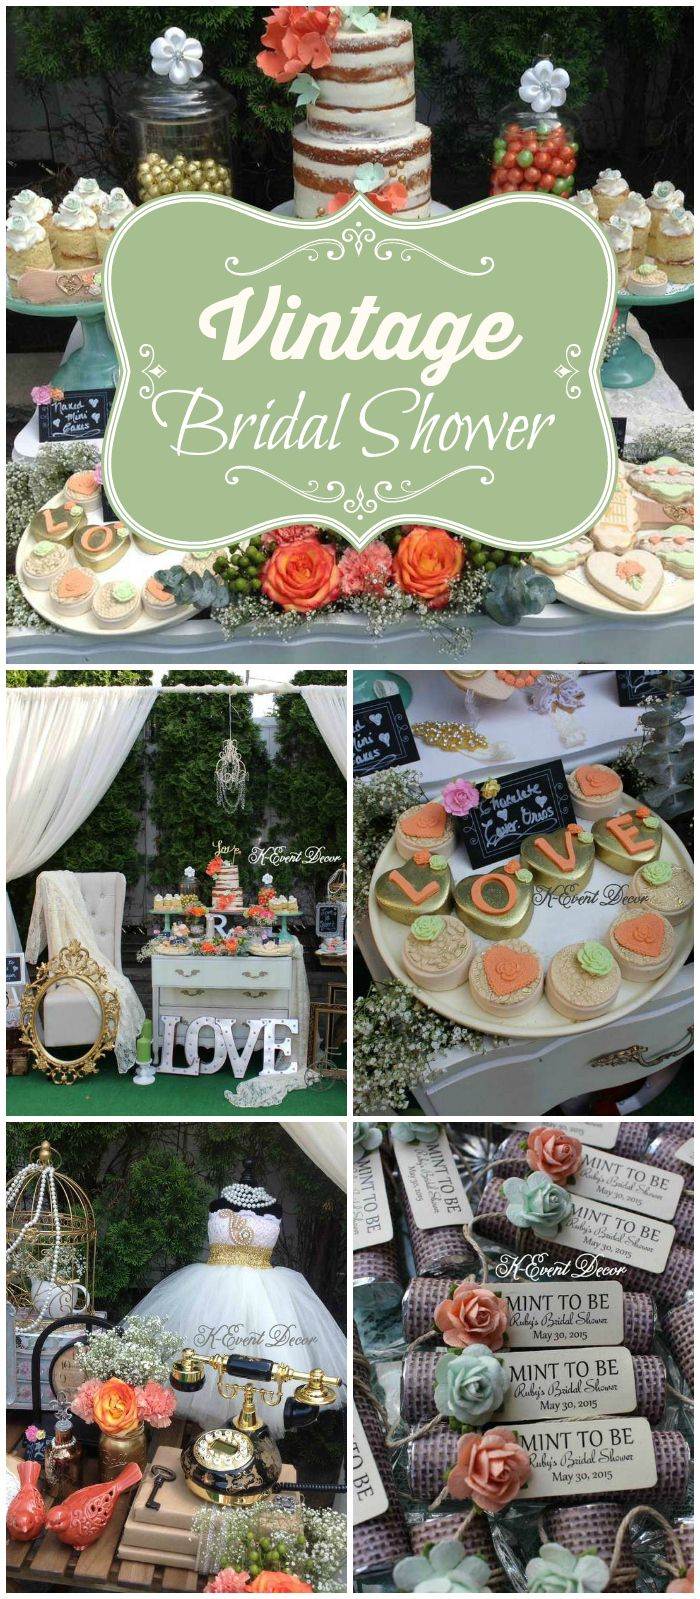 so many amazing details at this vintage bridal shower see more party ideas at catchmypartycom